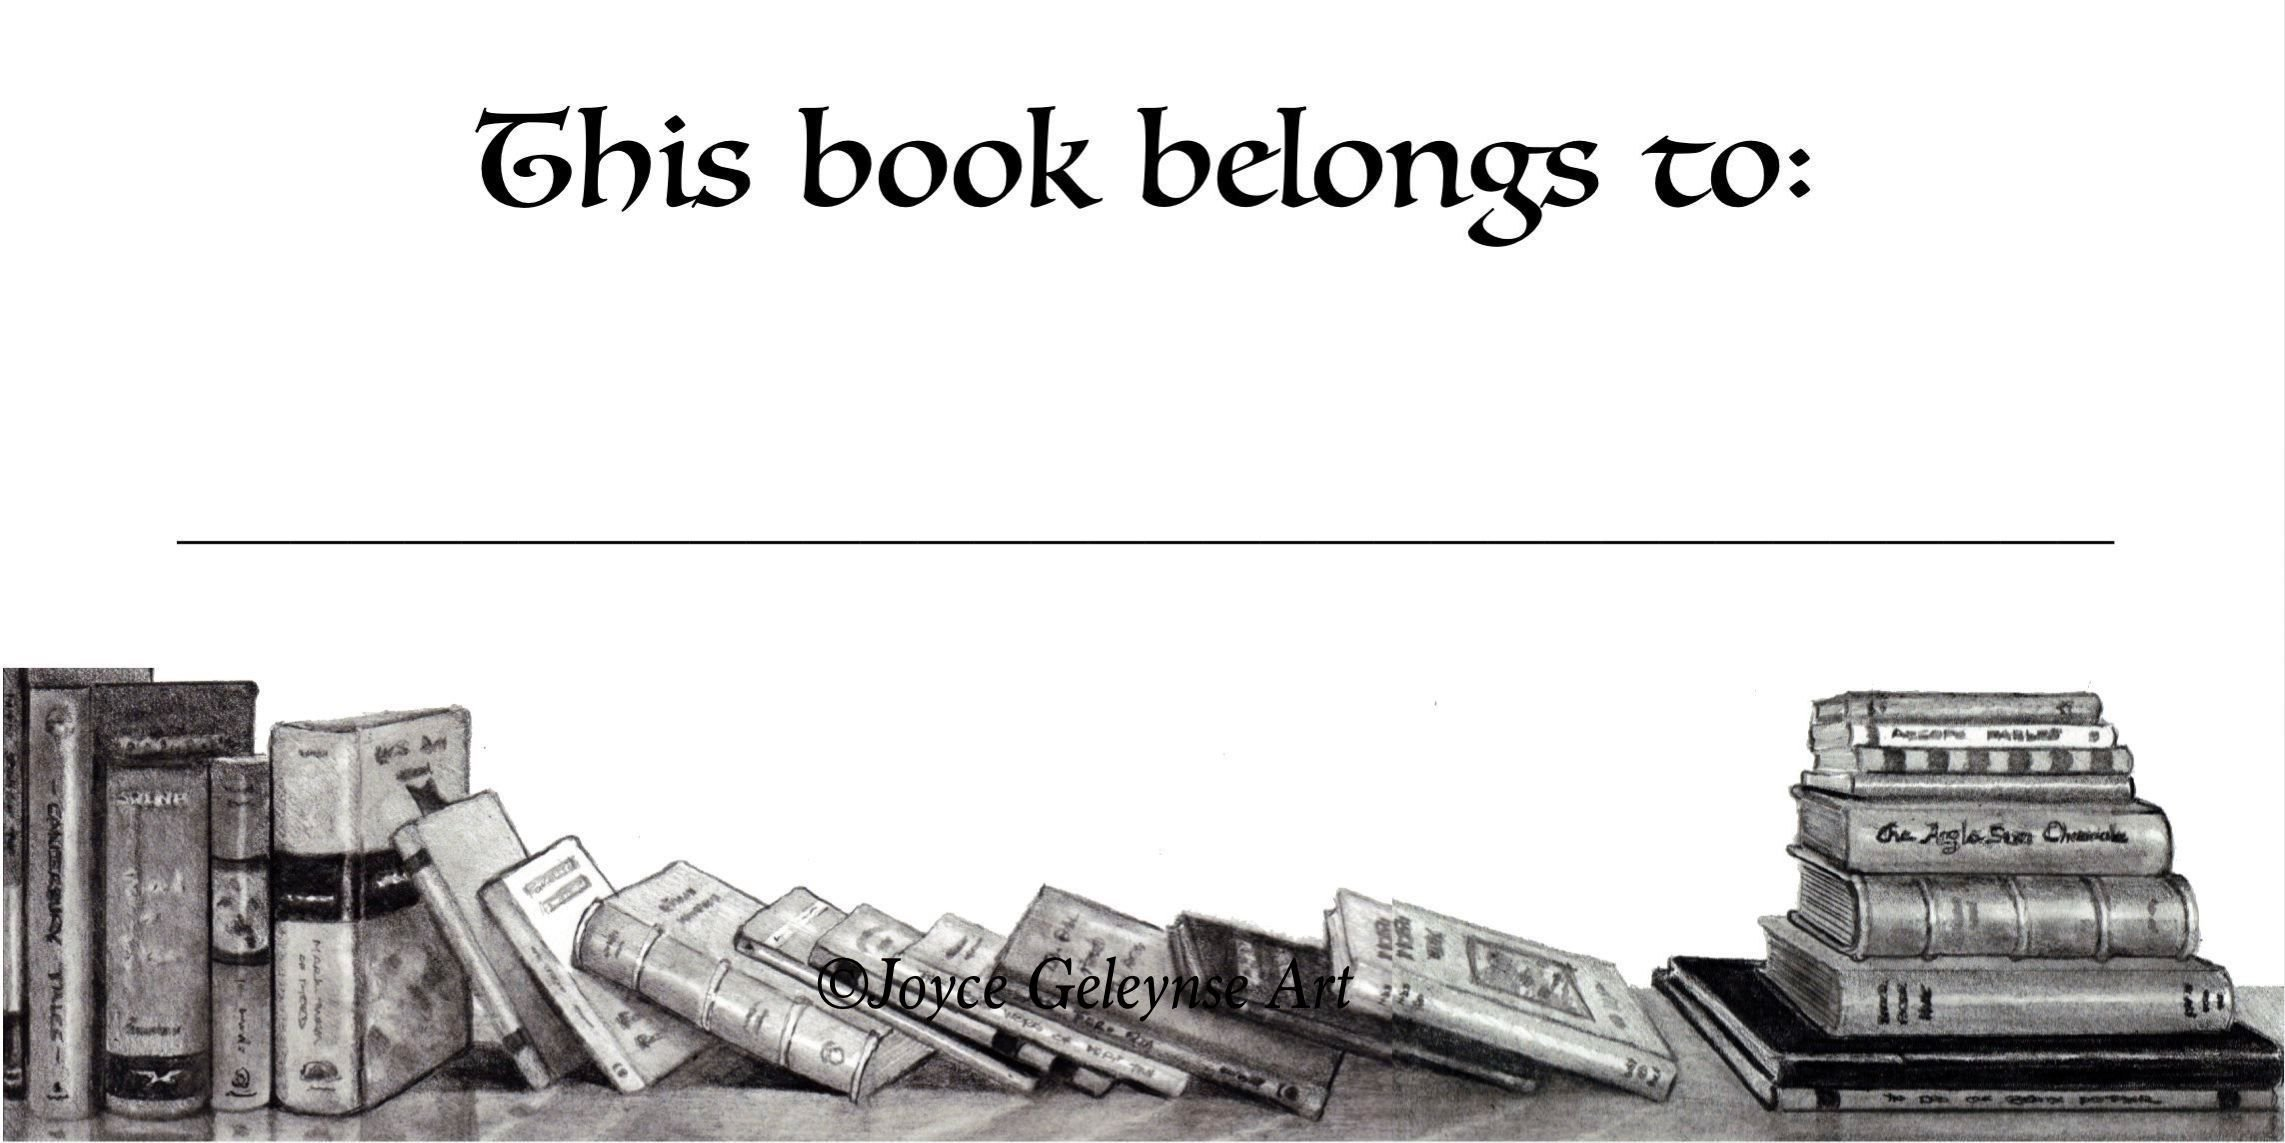 Book Stickers, Bookplate, Your Name, This Book Belongs To: Pencil Drawing of Books: Art